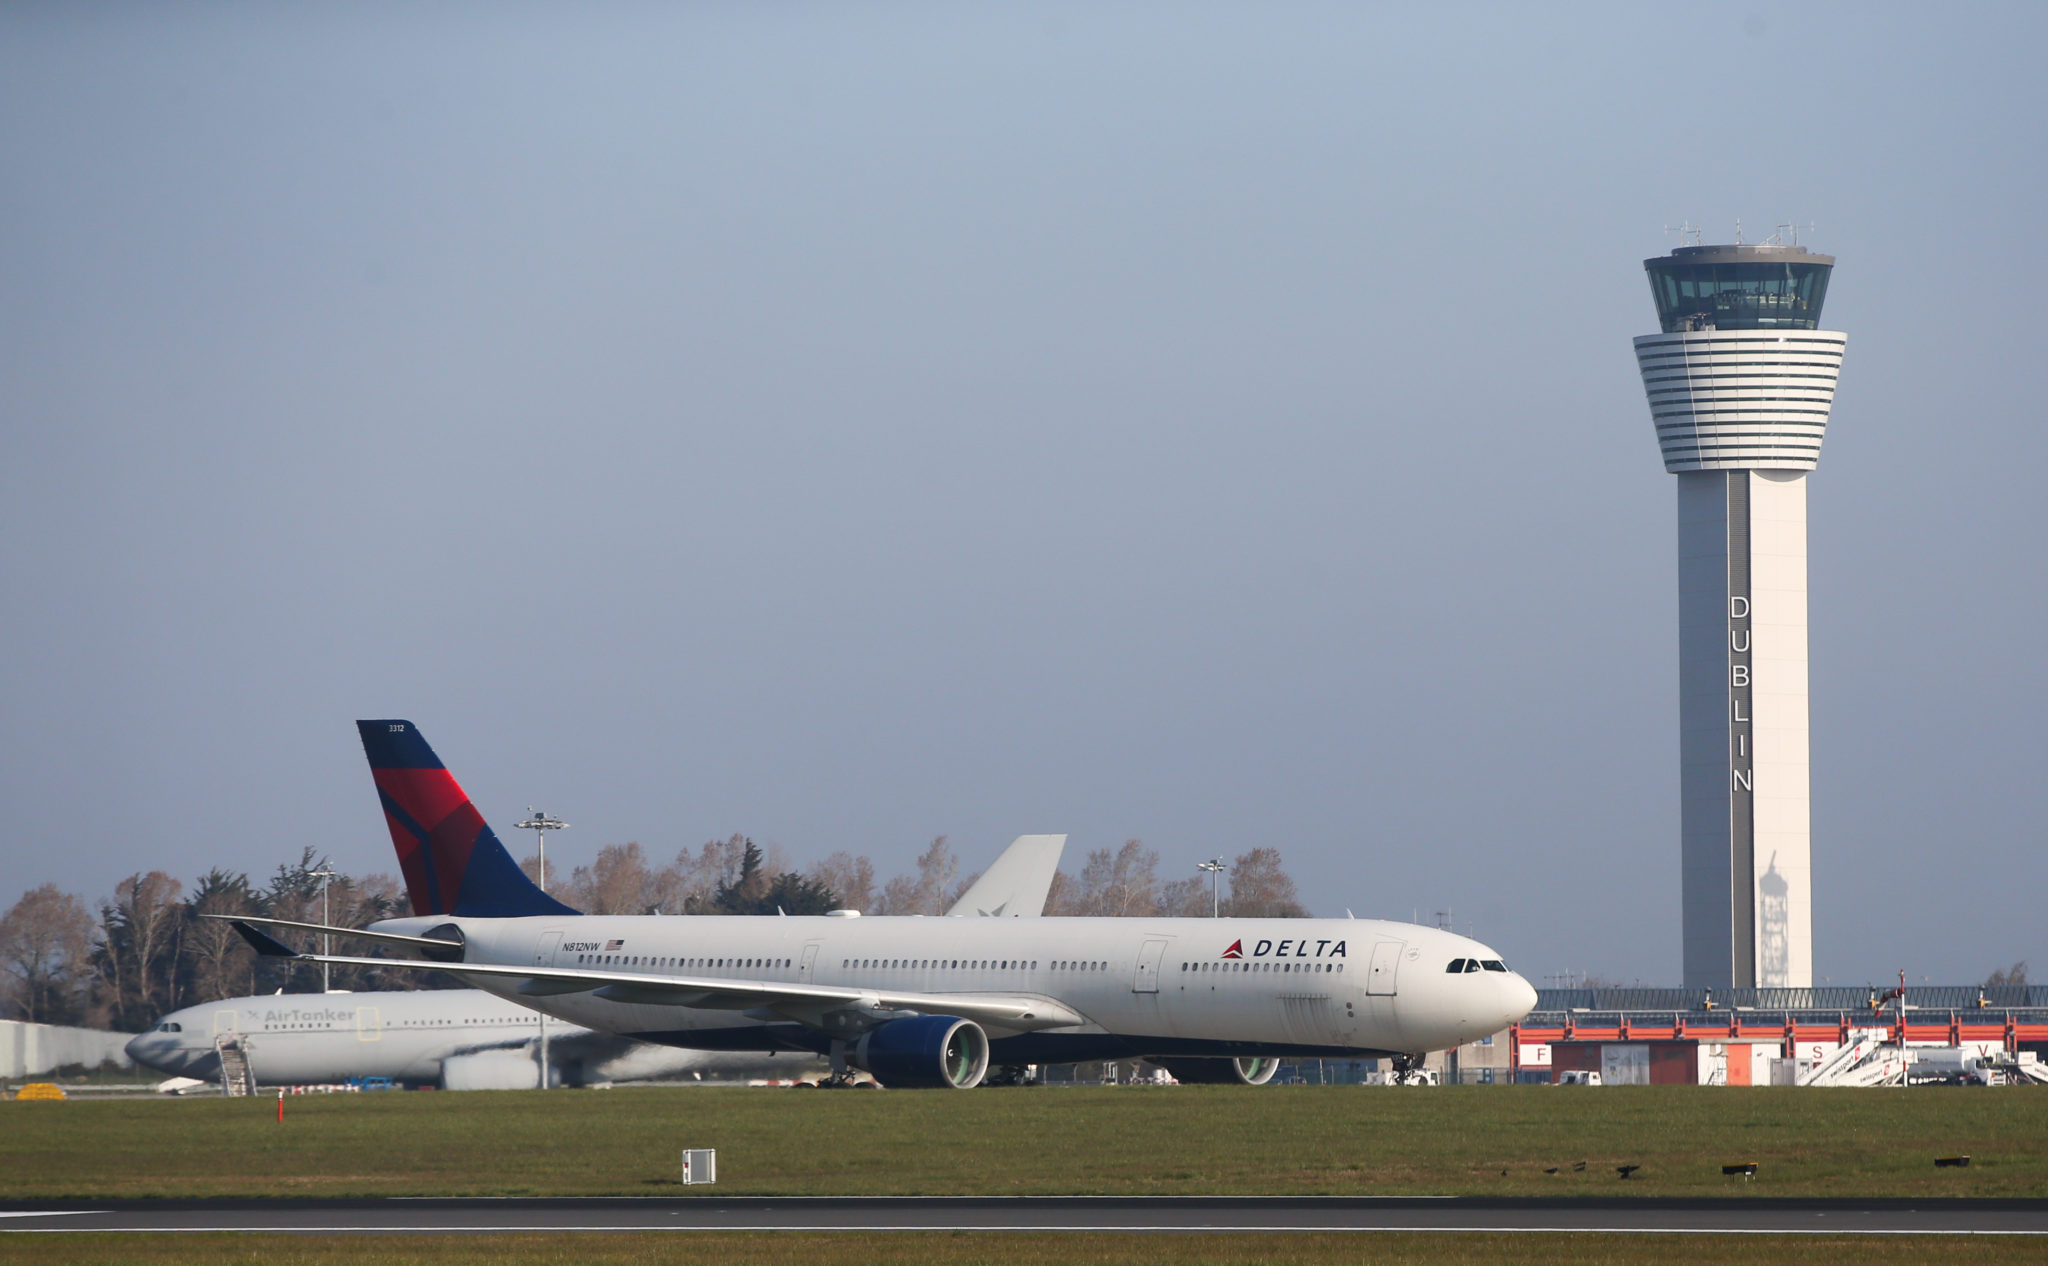 A Delta Airlines plane landing at Dublin Airport in April 2021.